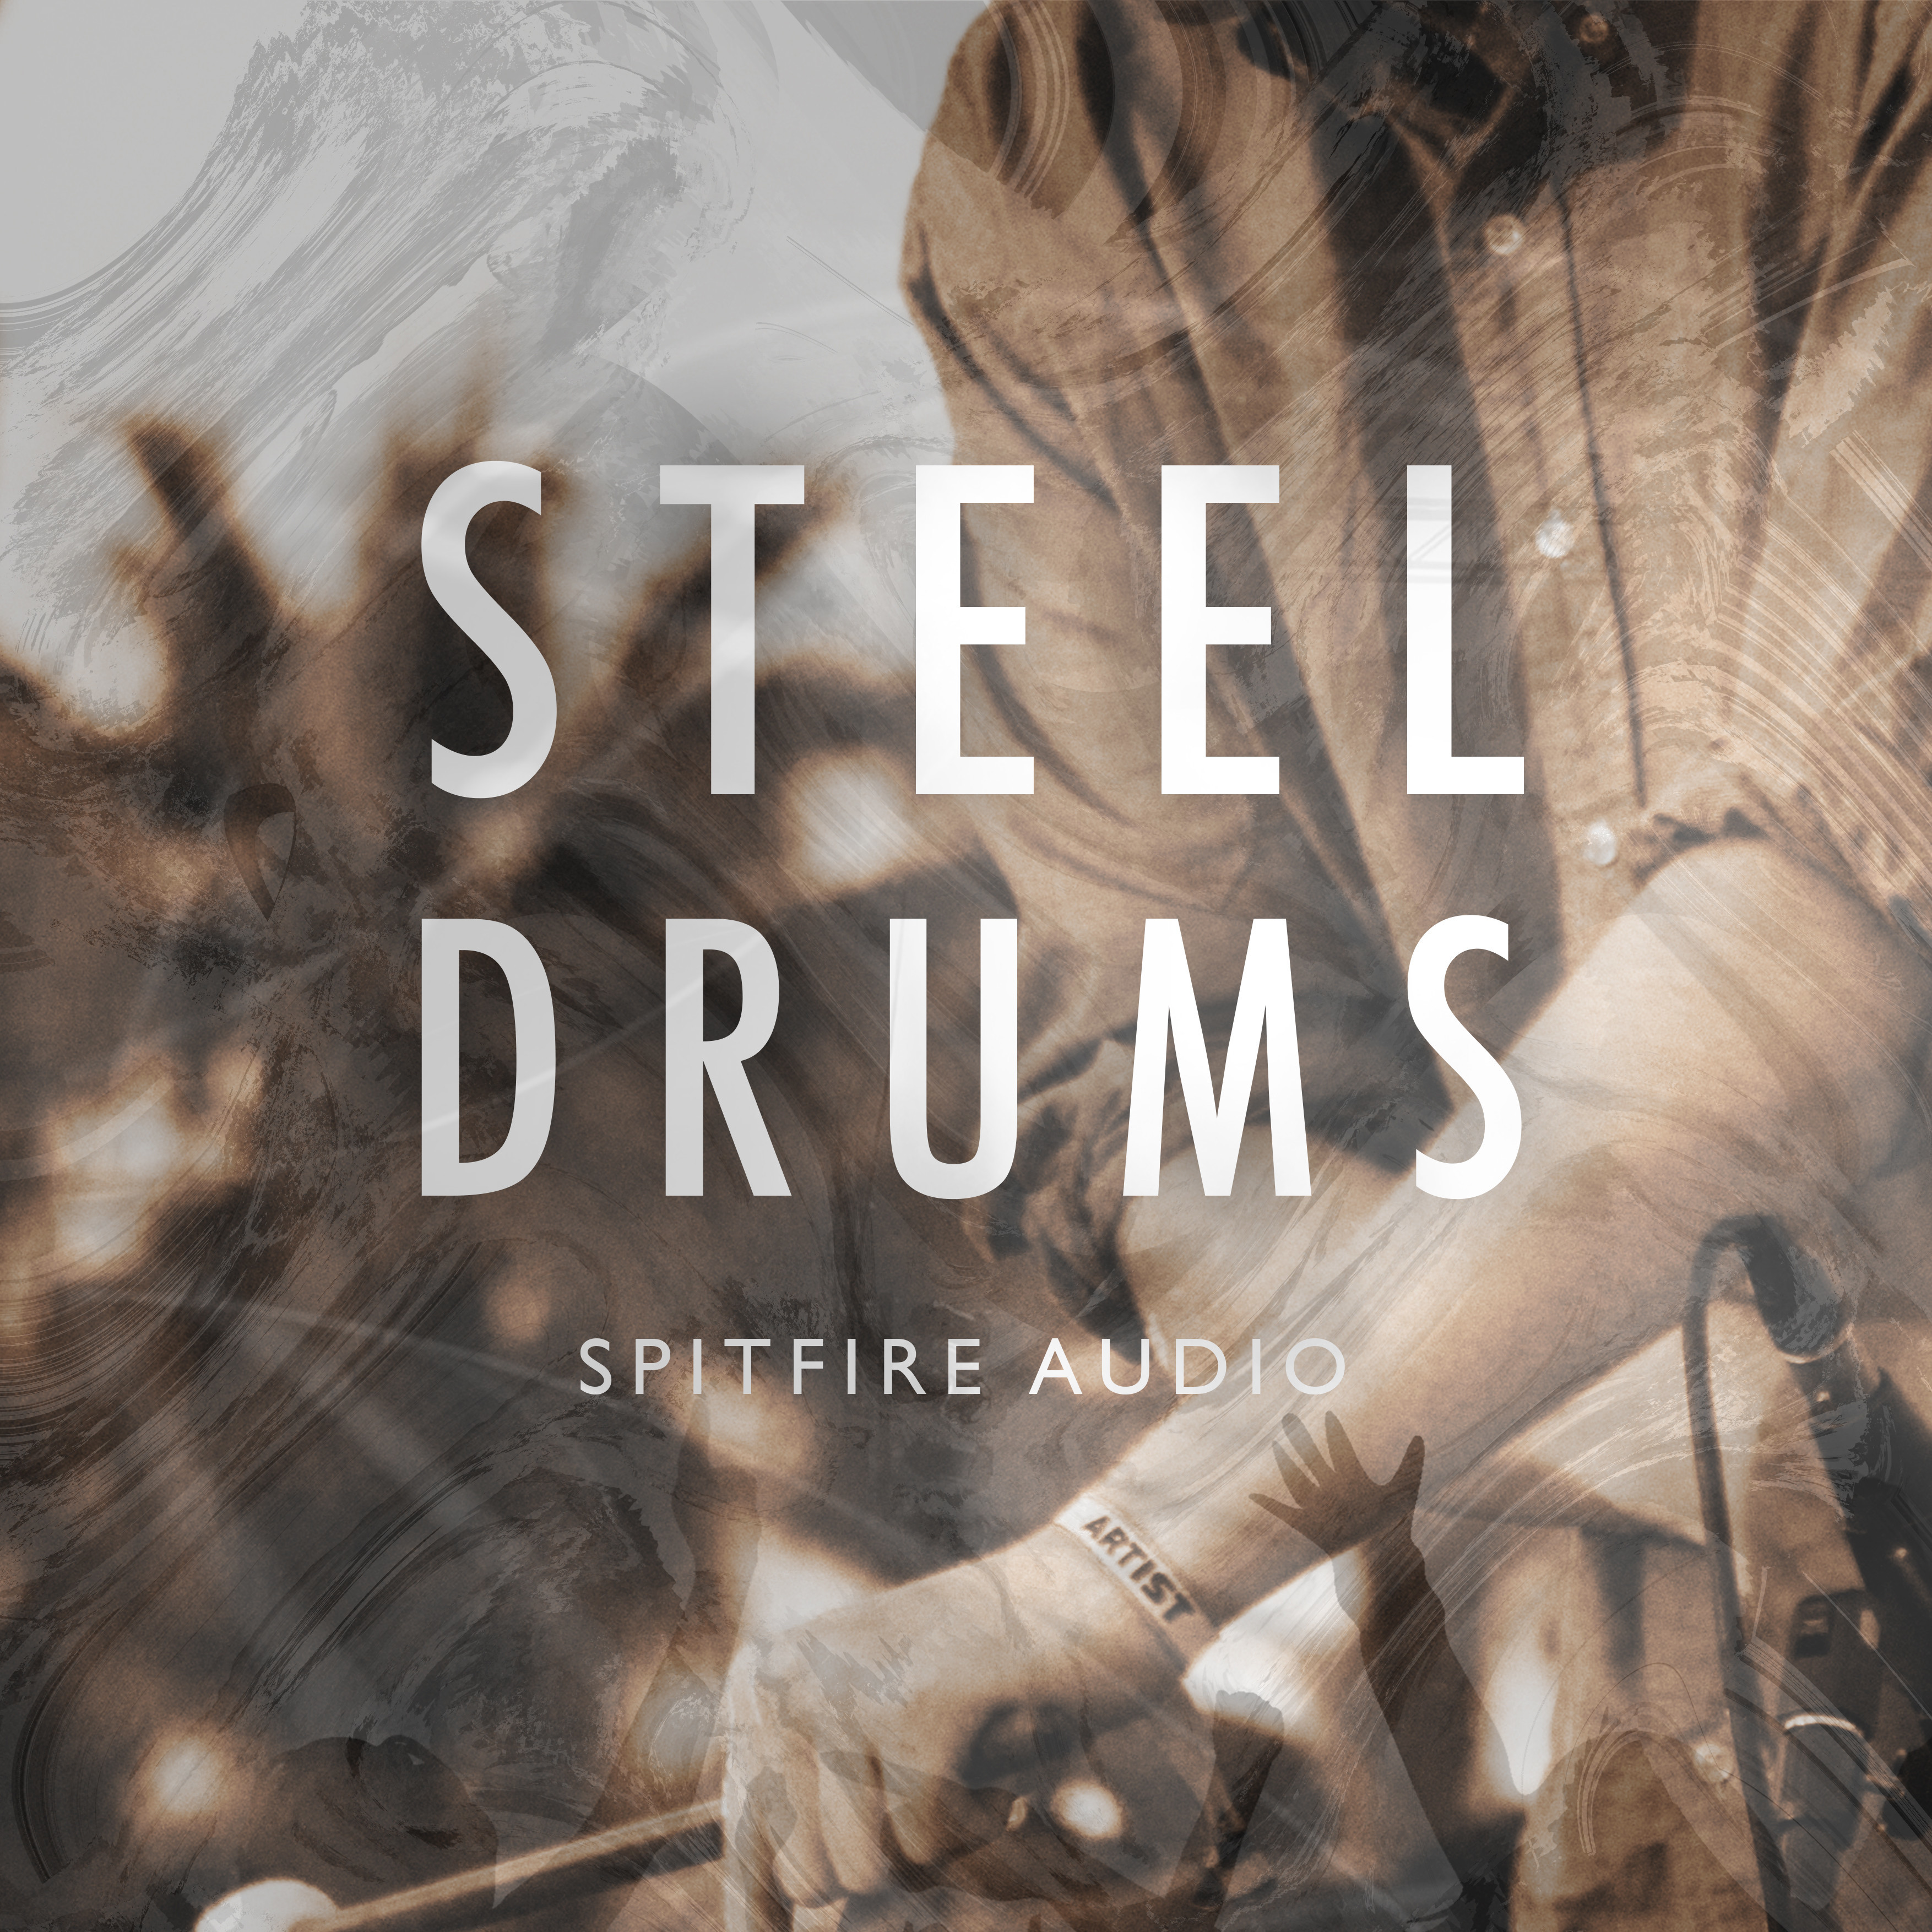 Spitfire Audio - Steel Drums Released - KVR Audio